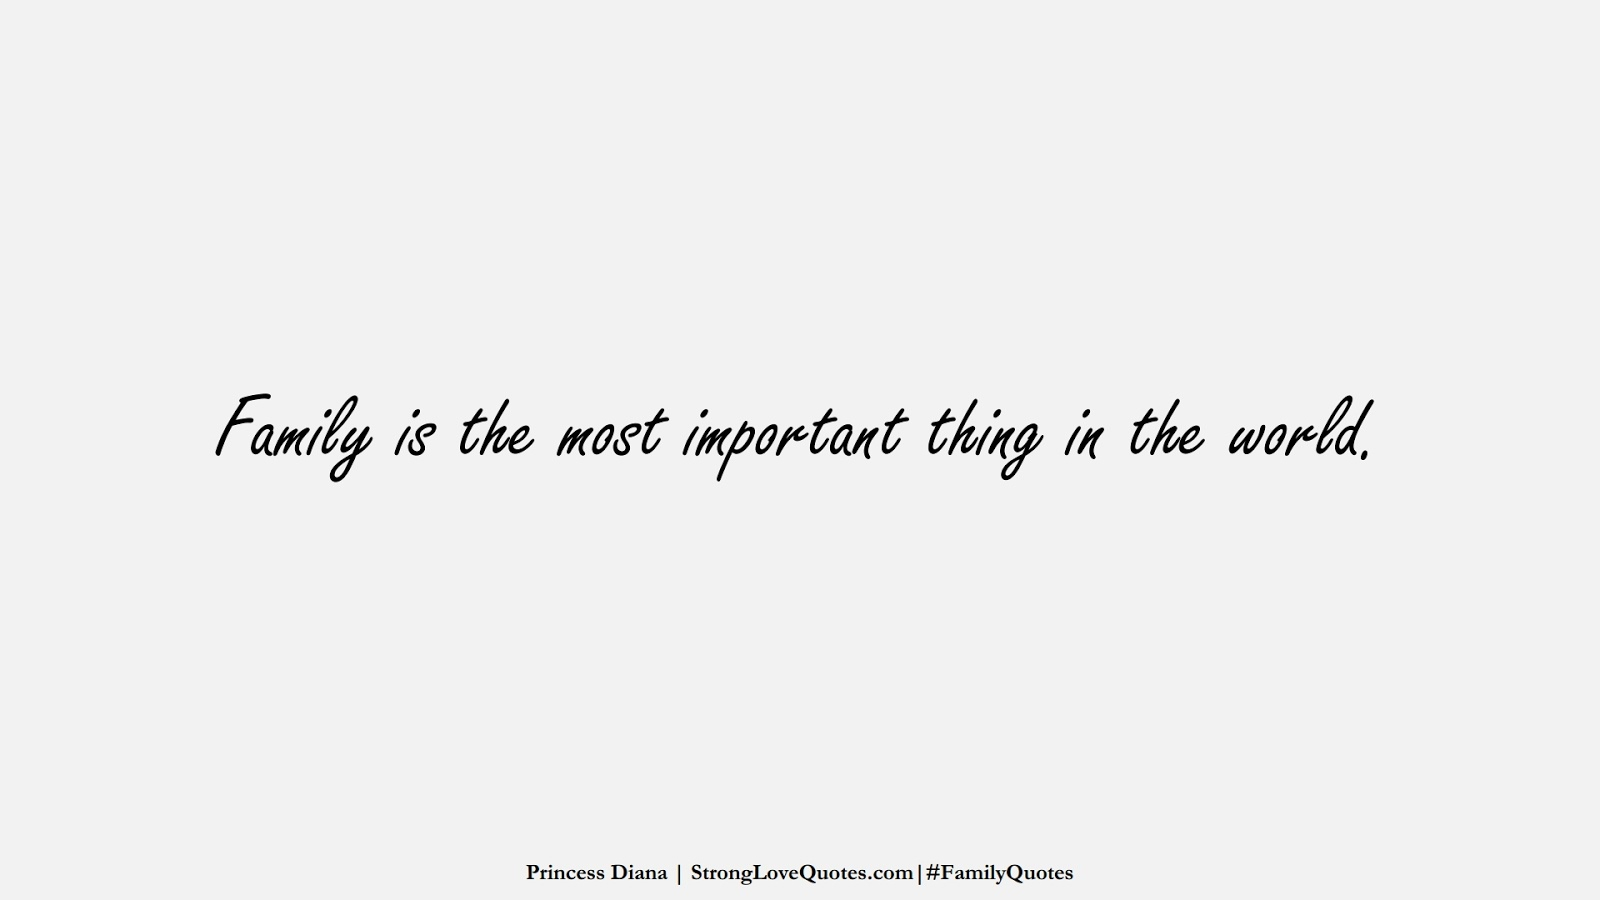 Family is the most important thing in the world. (Princess Diana);  #FamilyQuotes